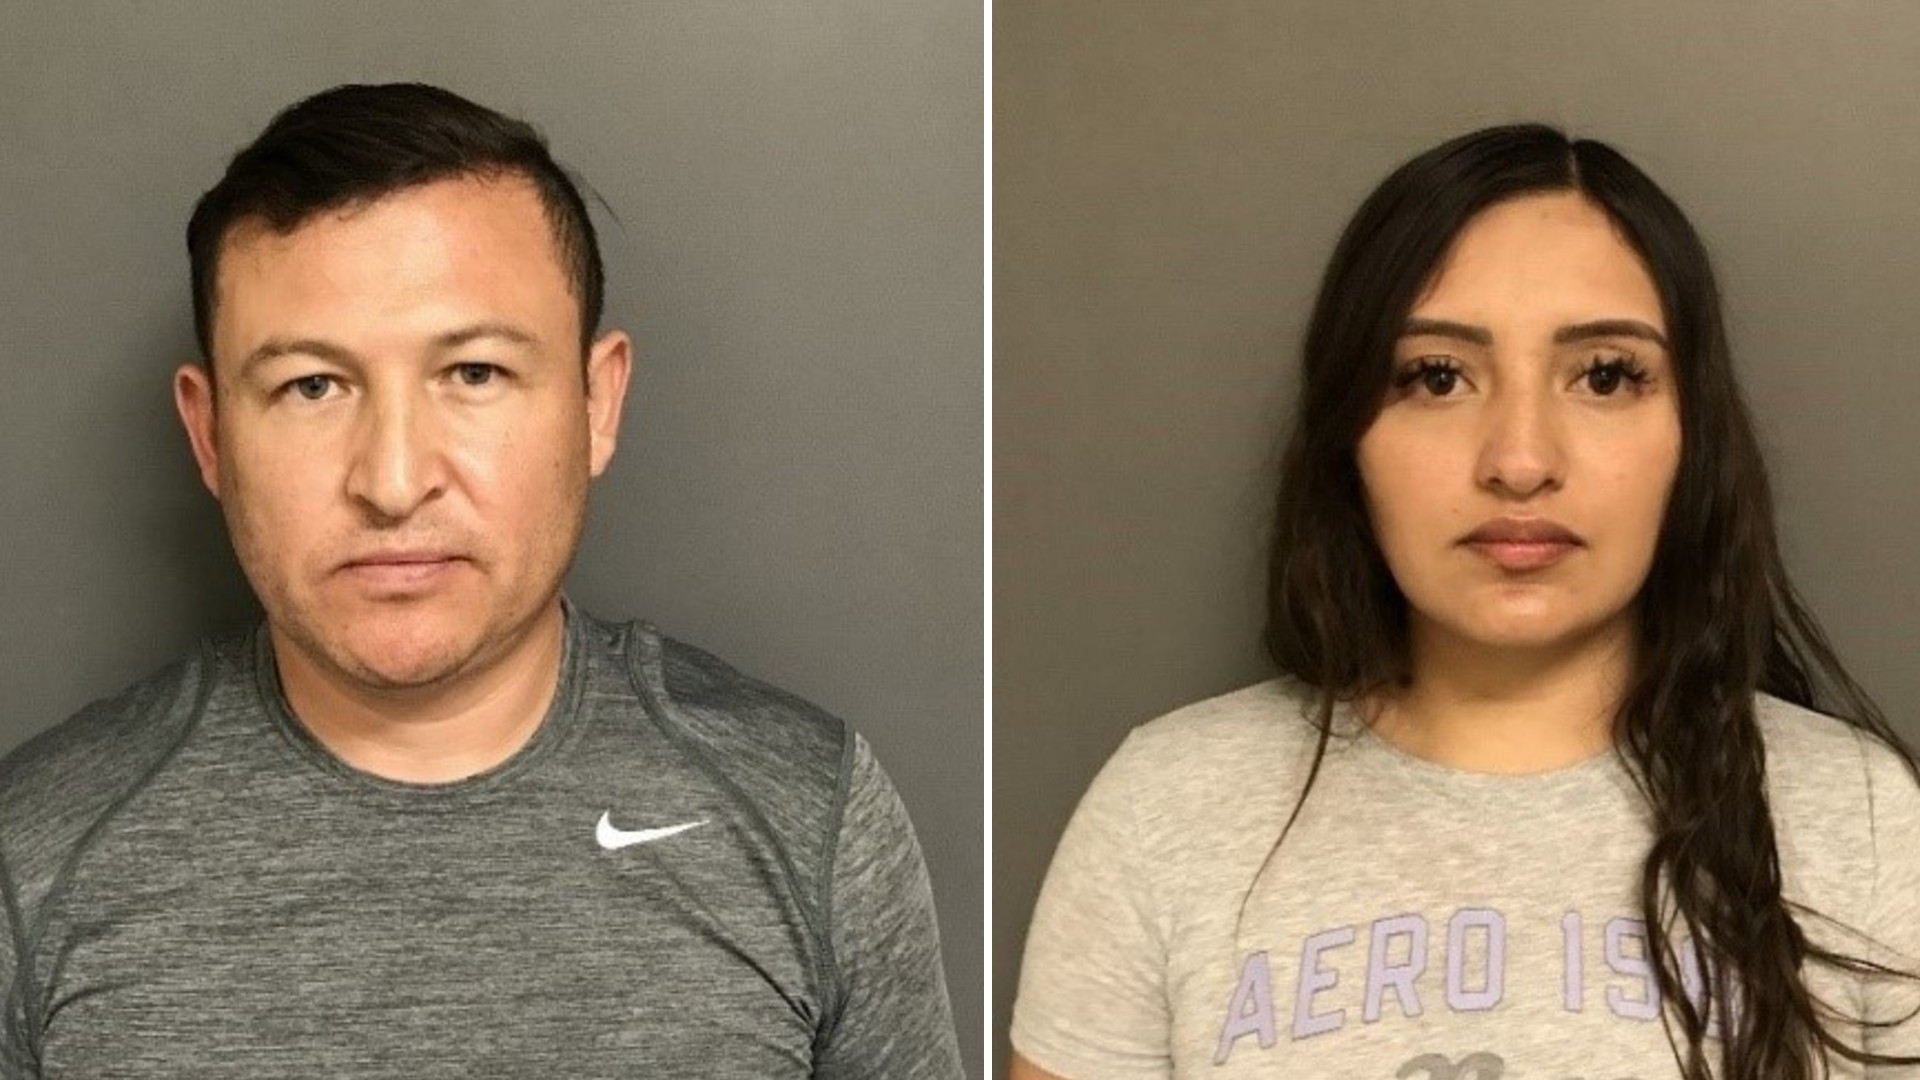 Sabastian Rodriguez and Alicia Garcia-Gomez are seen in booking photos released by the Irvine Police Department on May 26, 2021.